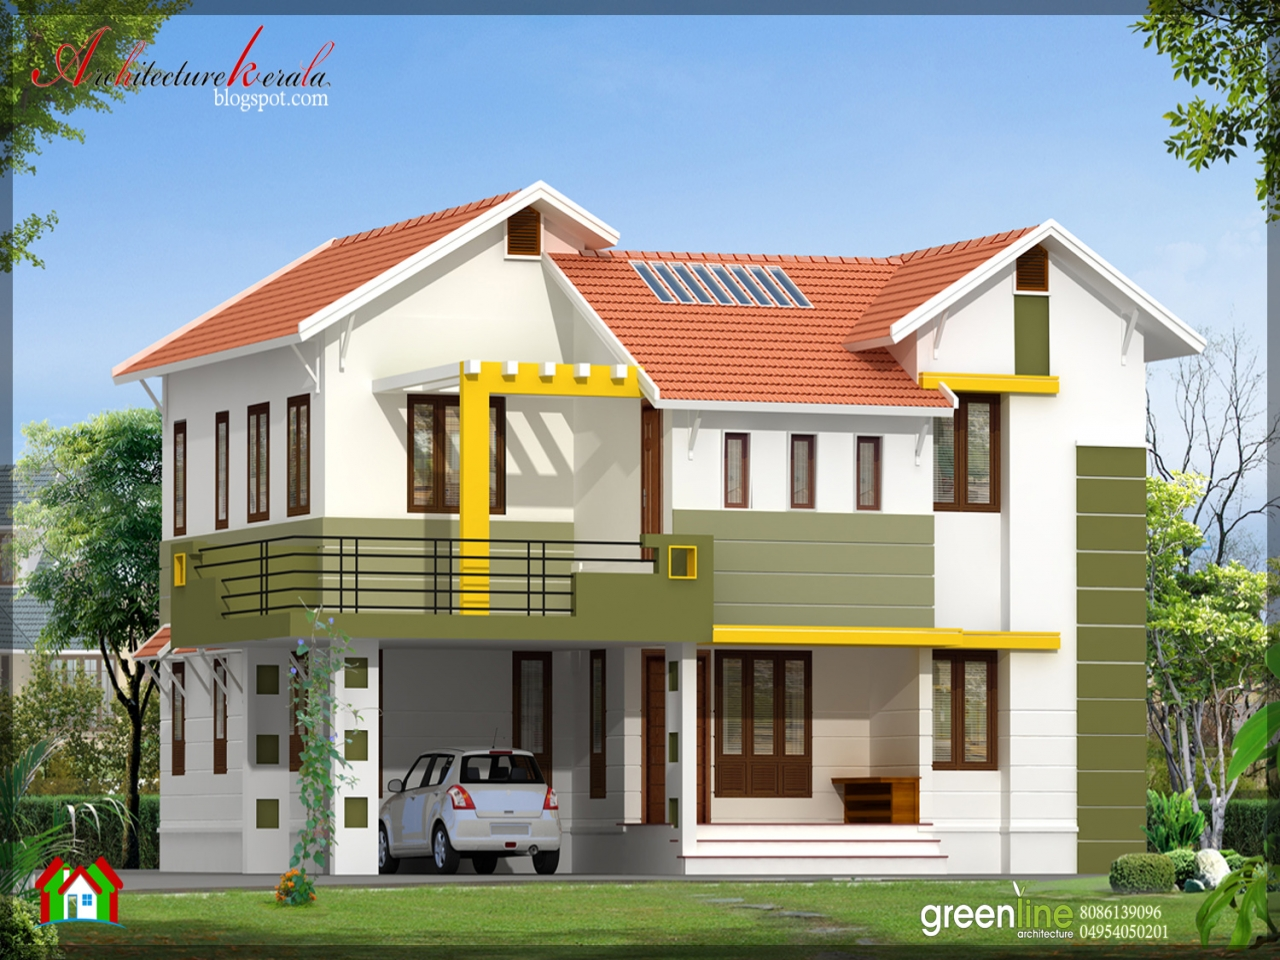 Simple modern house designs simple house design in india for Indian style home plans